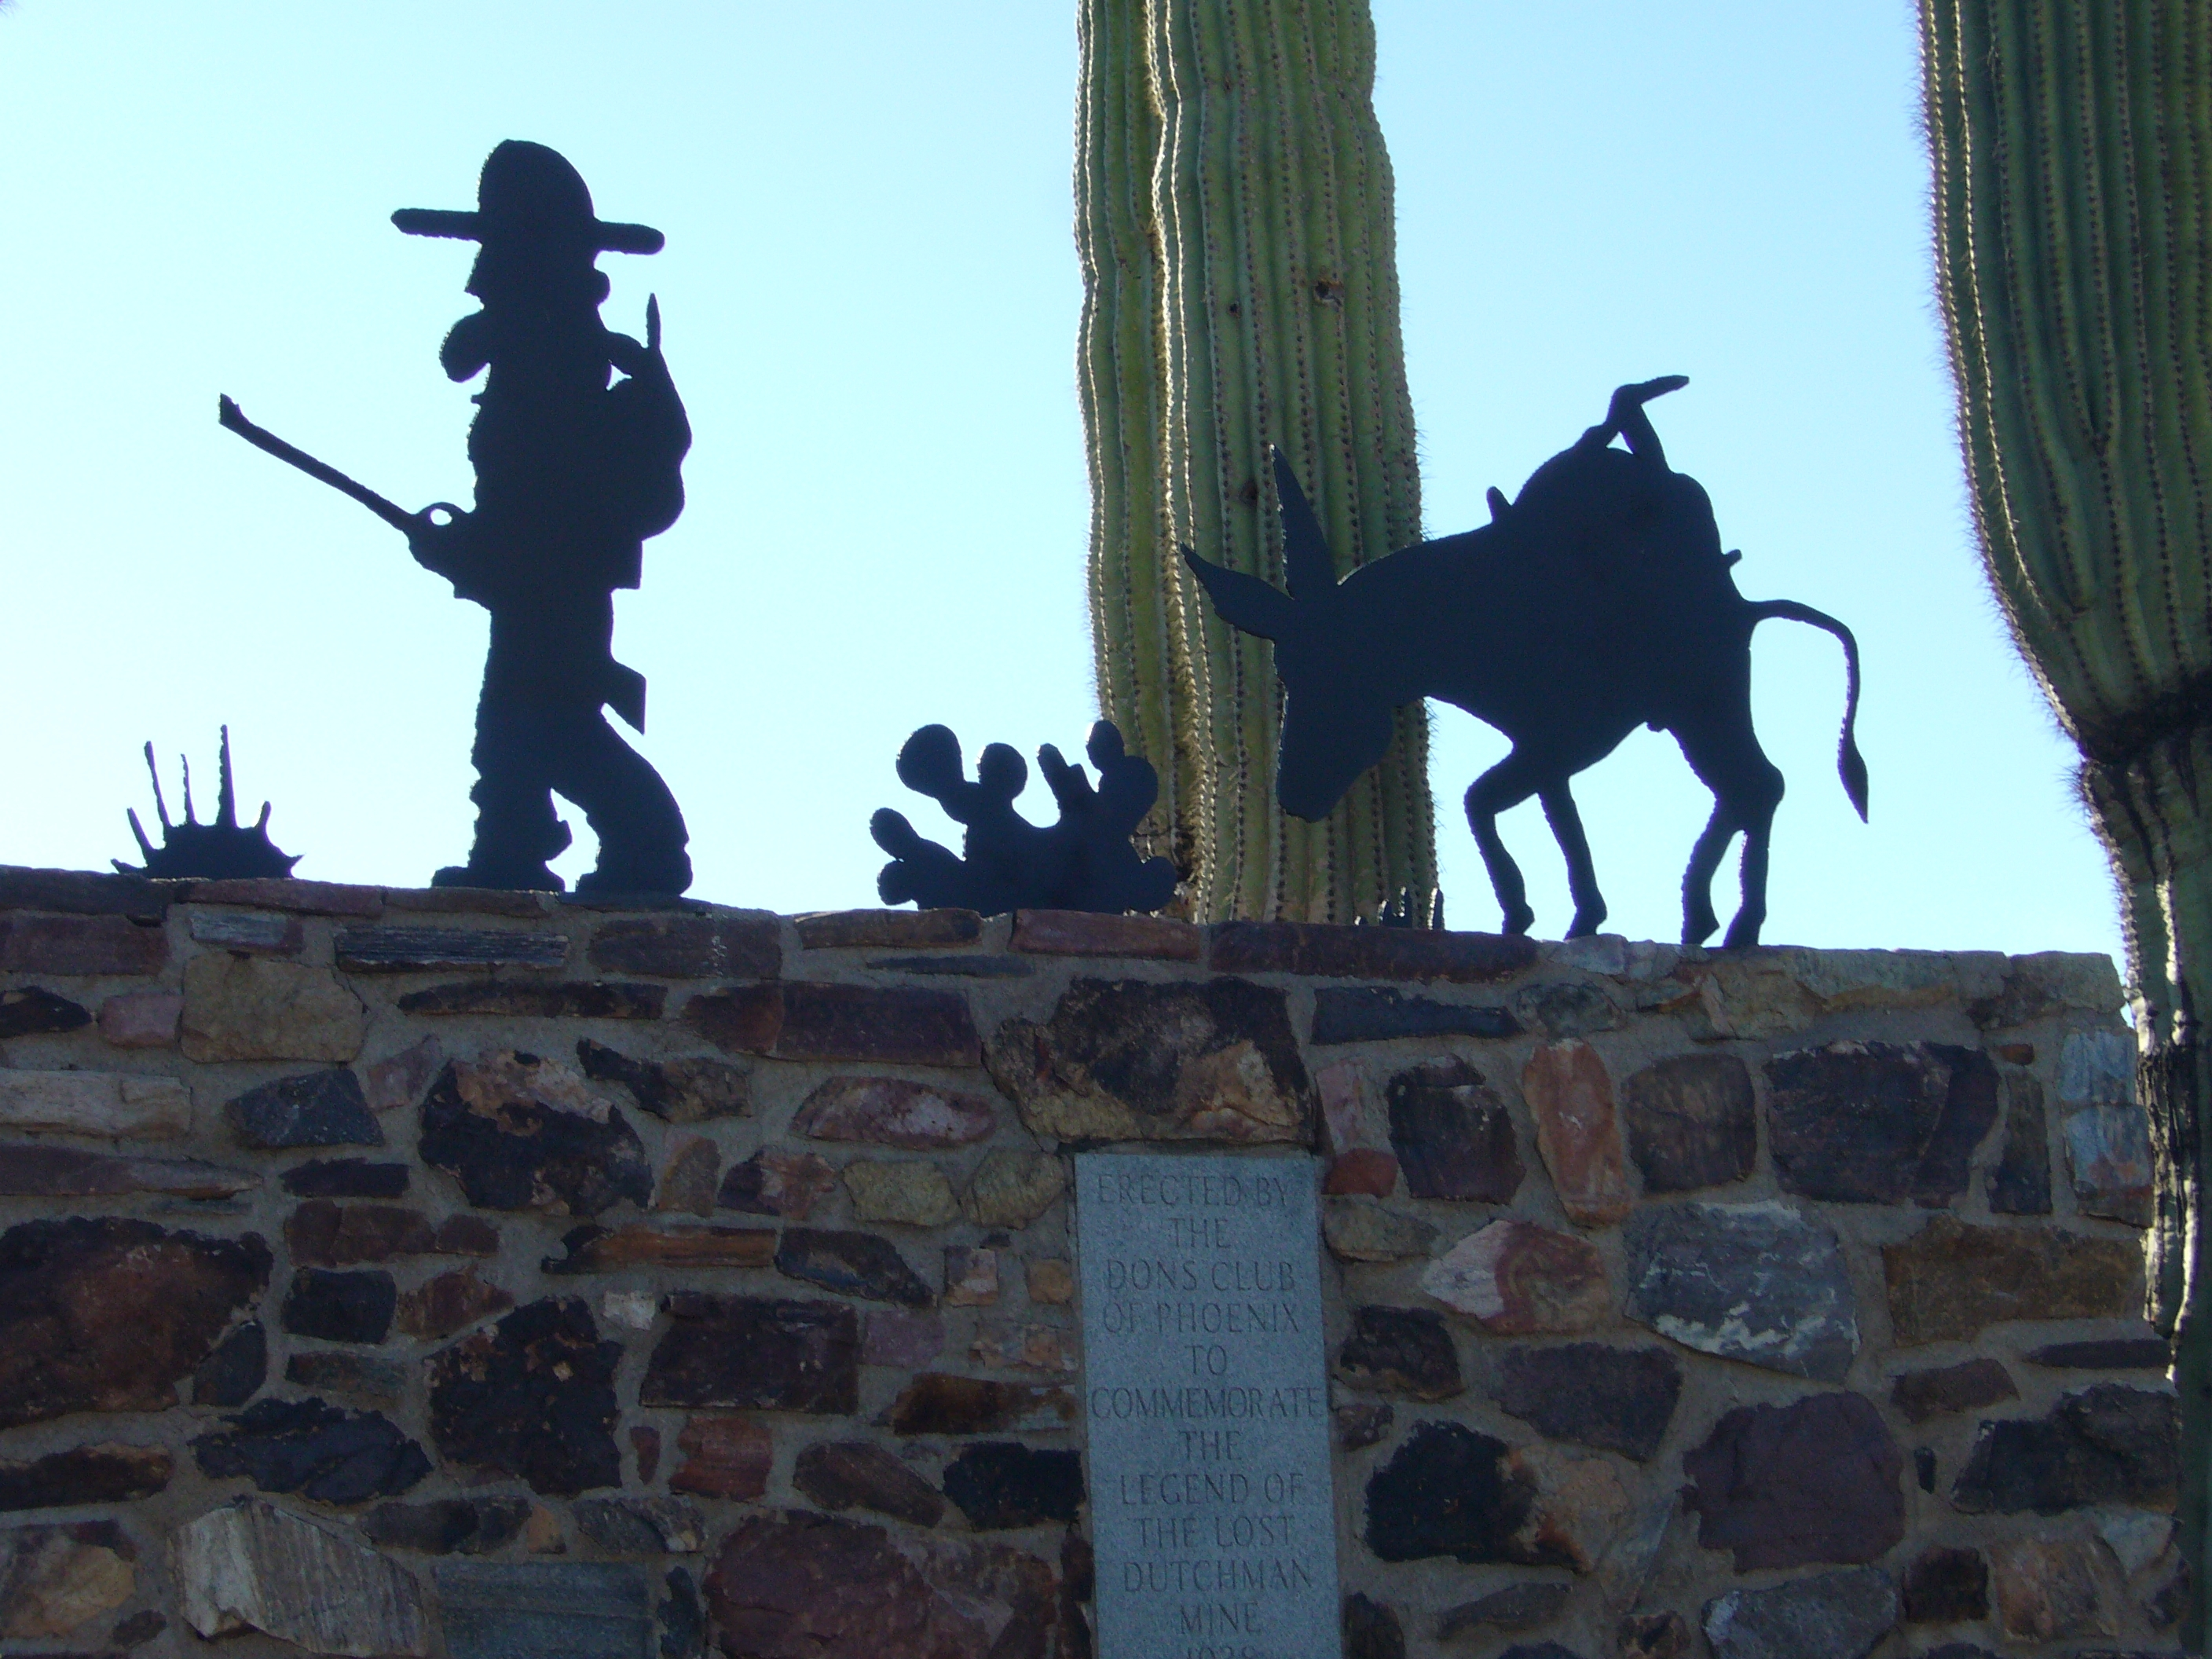 Sculpture on the Top of the Lost Dutchman Monument